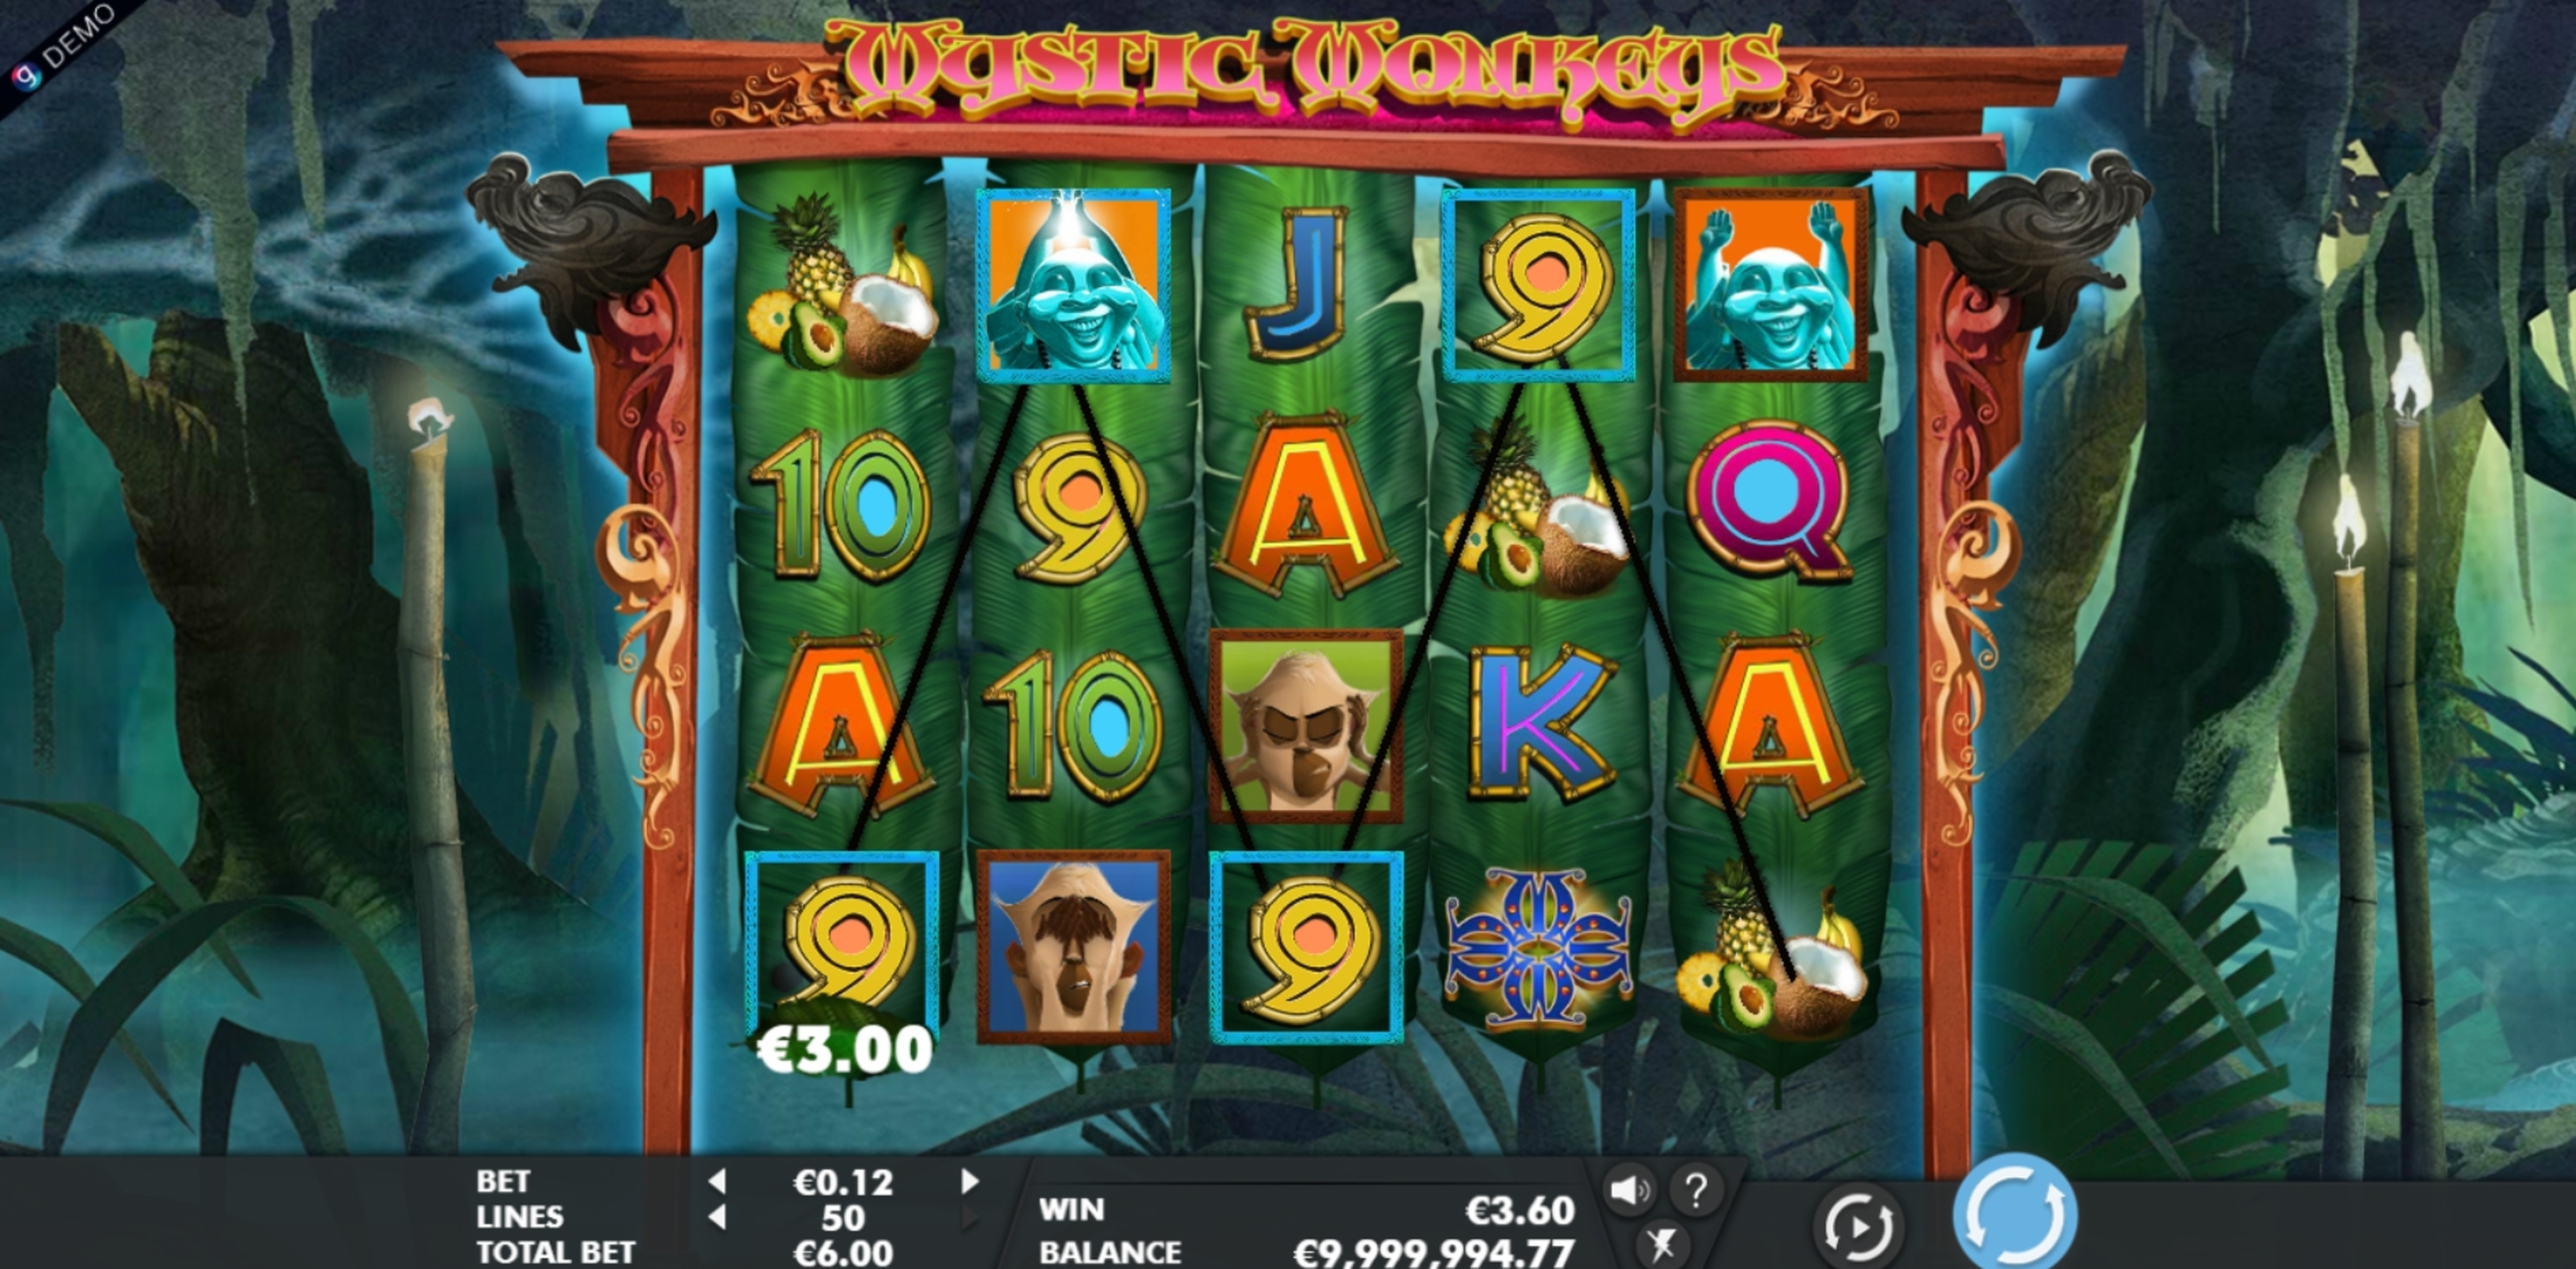 Win Money in Mystic Monkeys Free Slot Game by Genesis